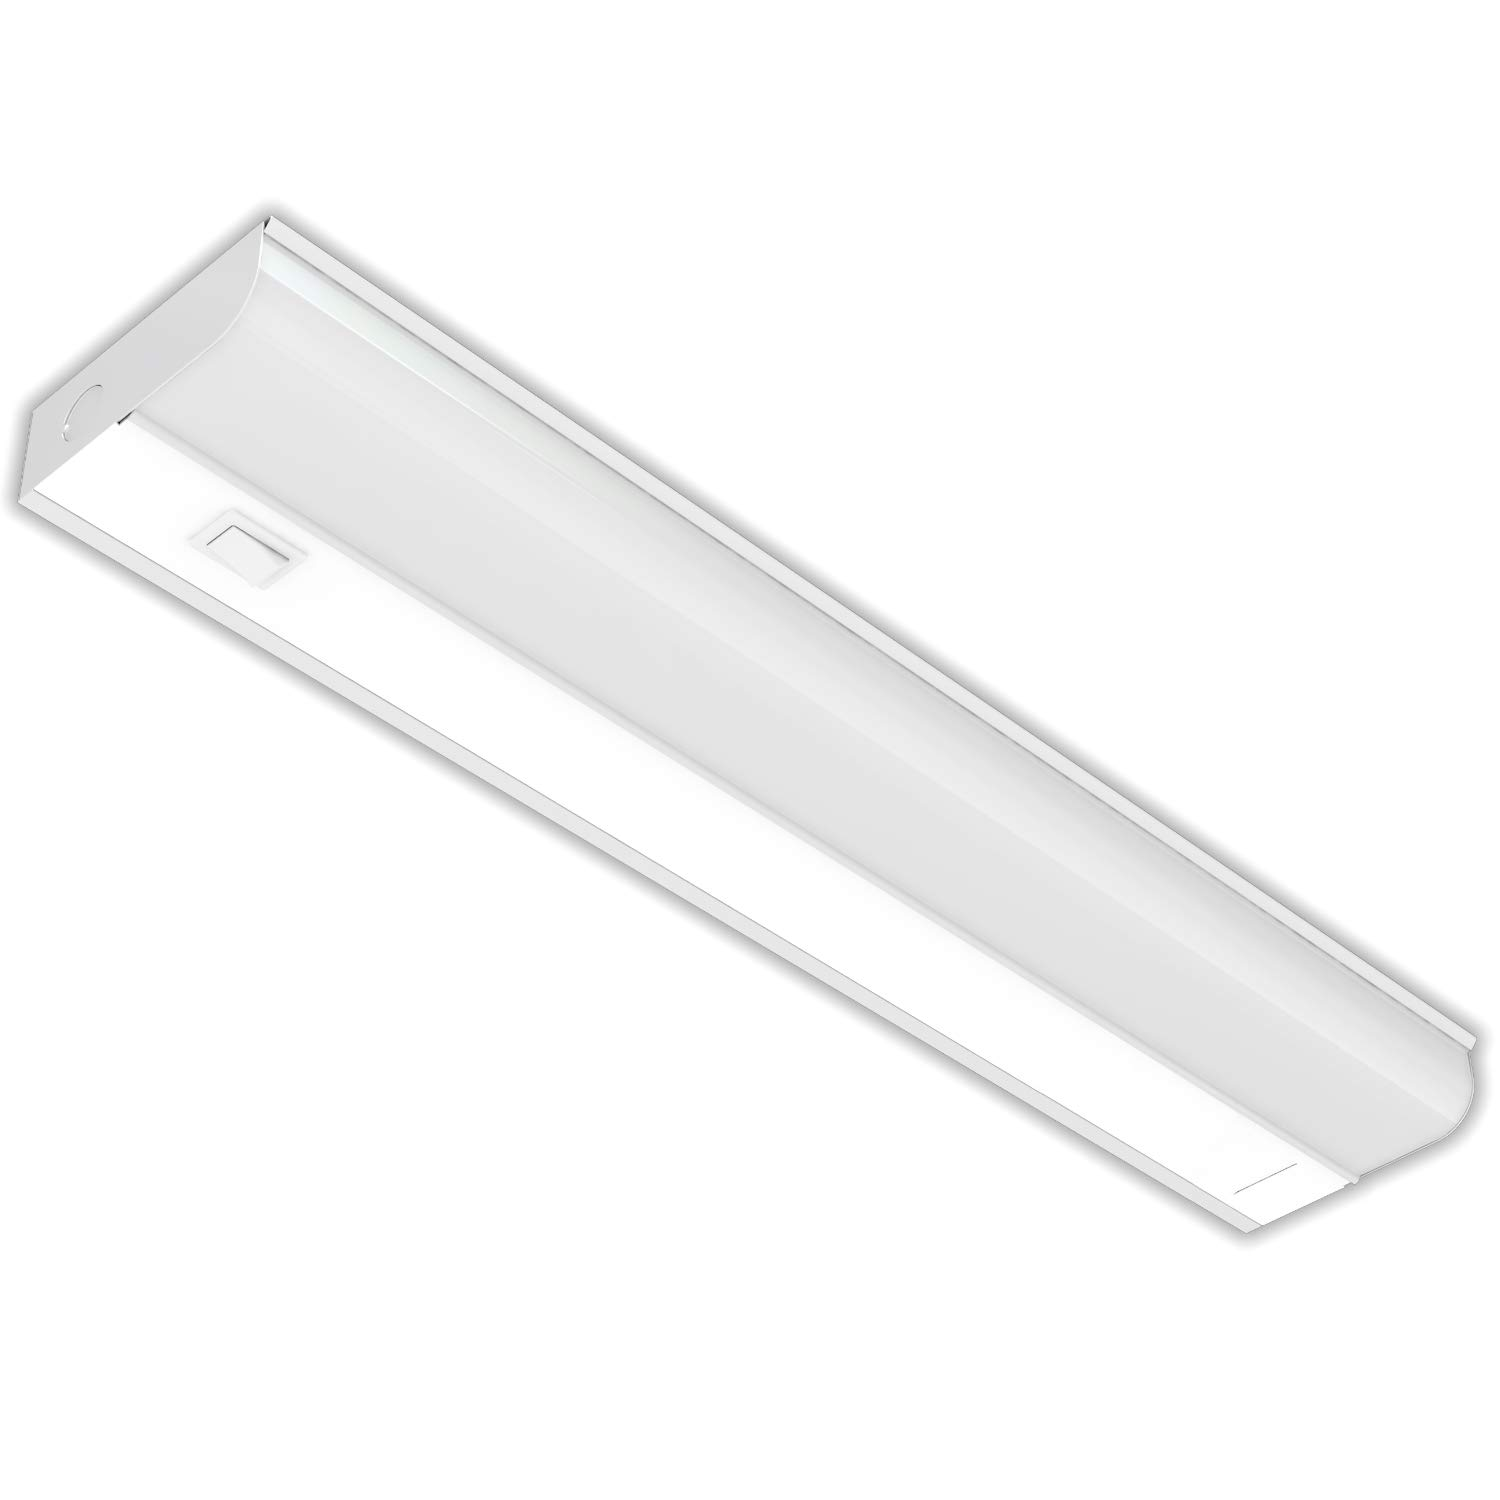 "Hardwired LED Under Cabinet Task Lighting - 12 Watt, 18"", Dimmable, CRI>90, 3000K (Warm White), Wide Body, Long Lasting Metal Base with Frost Lens"